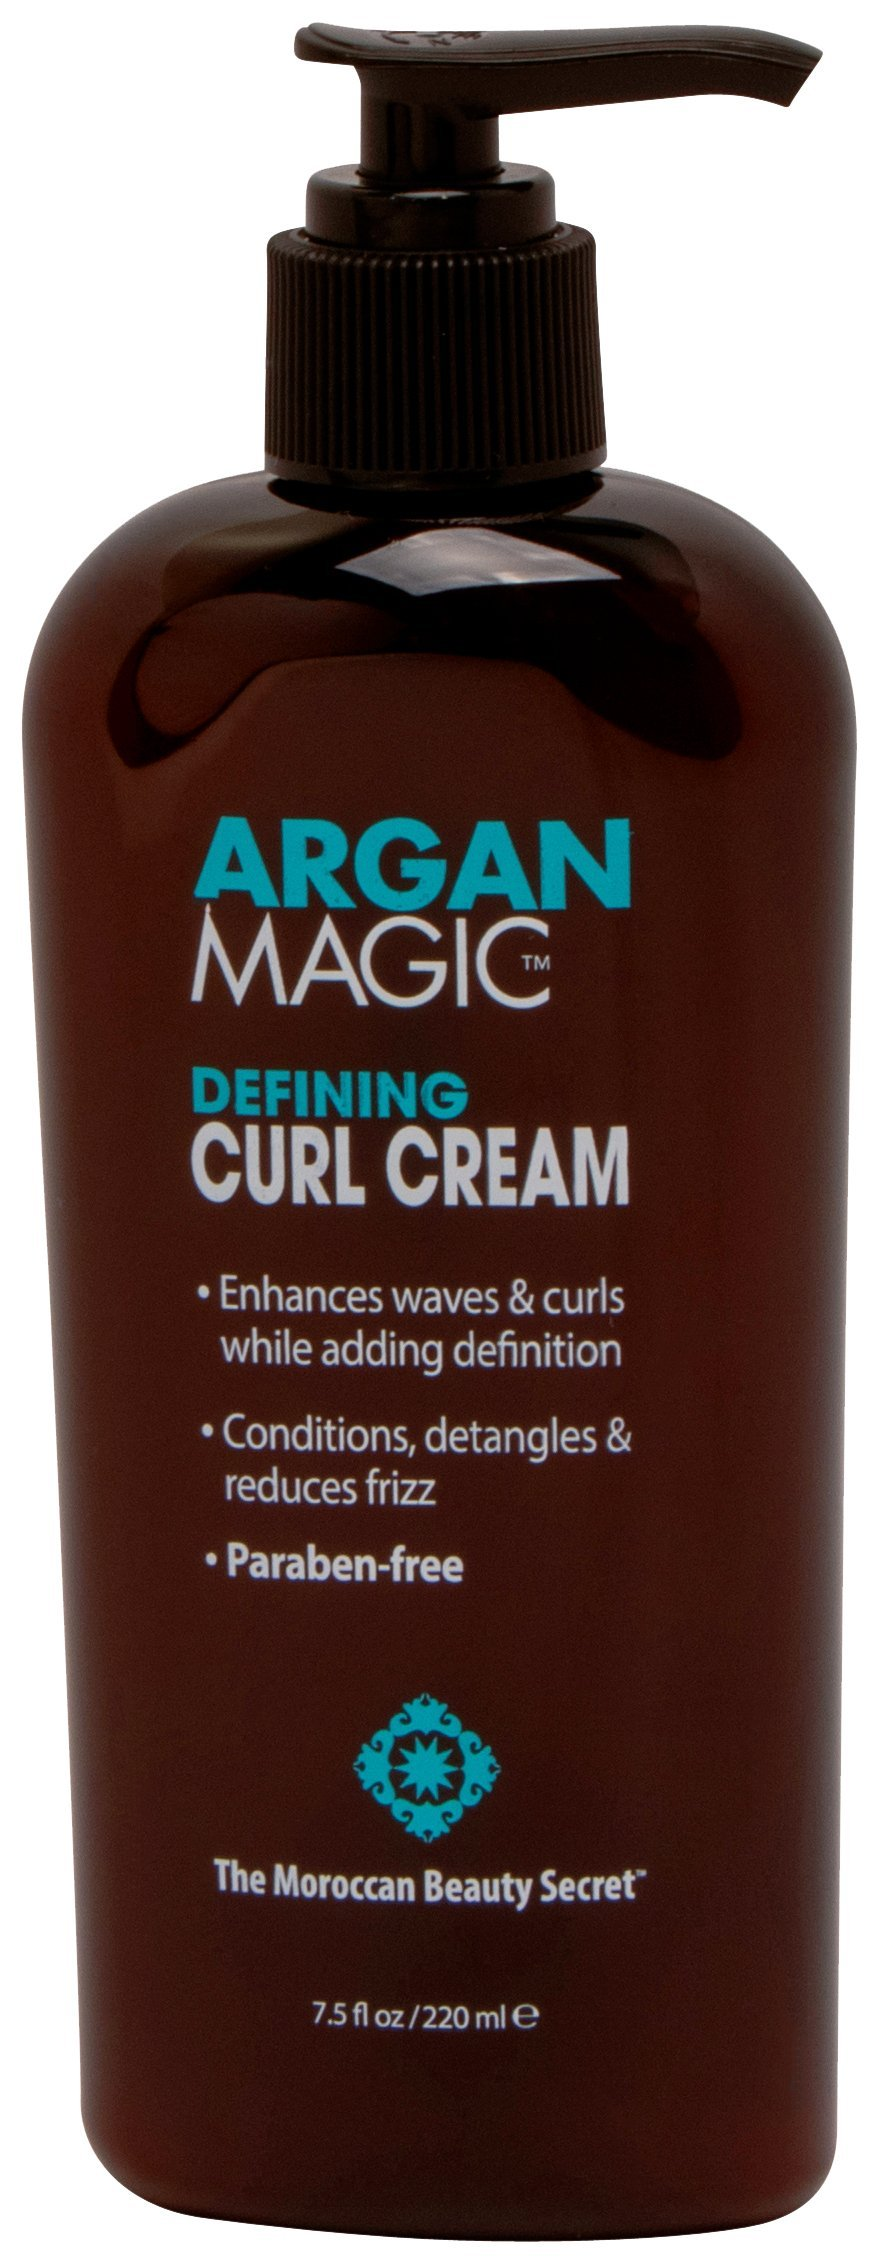 Argan Magic - ARGAN MAGIC - Defining Curl Cream (7.5 Ounce/220 Milliliter)